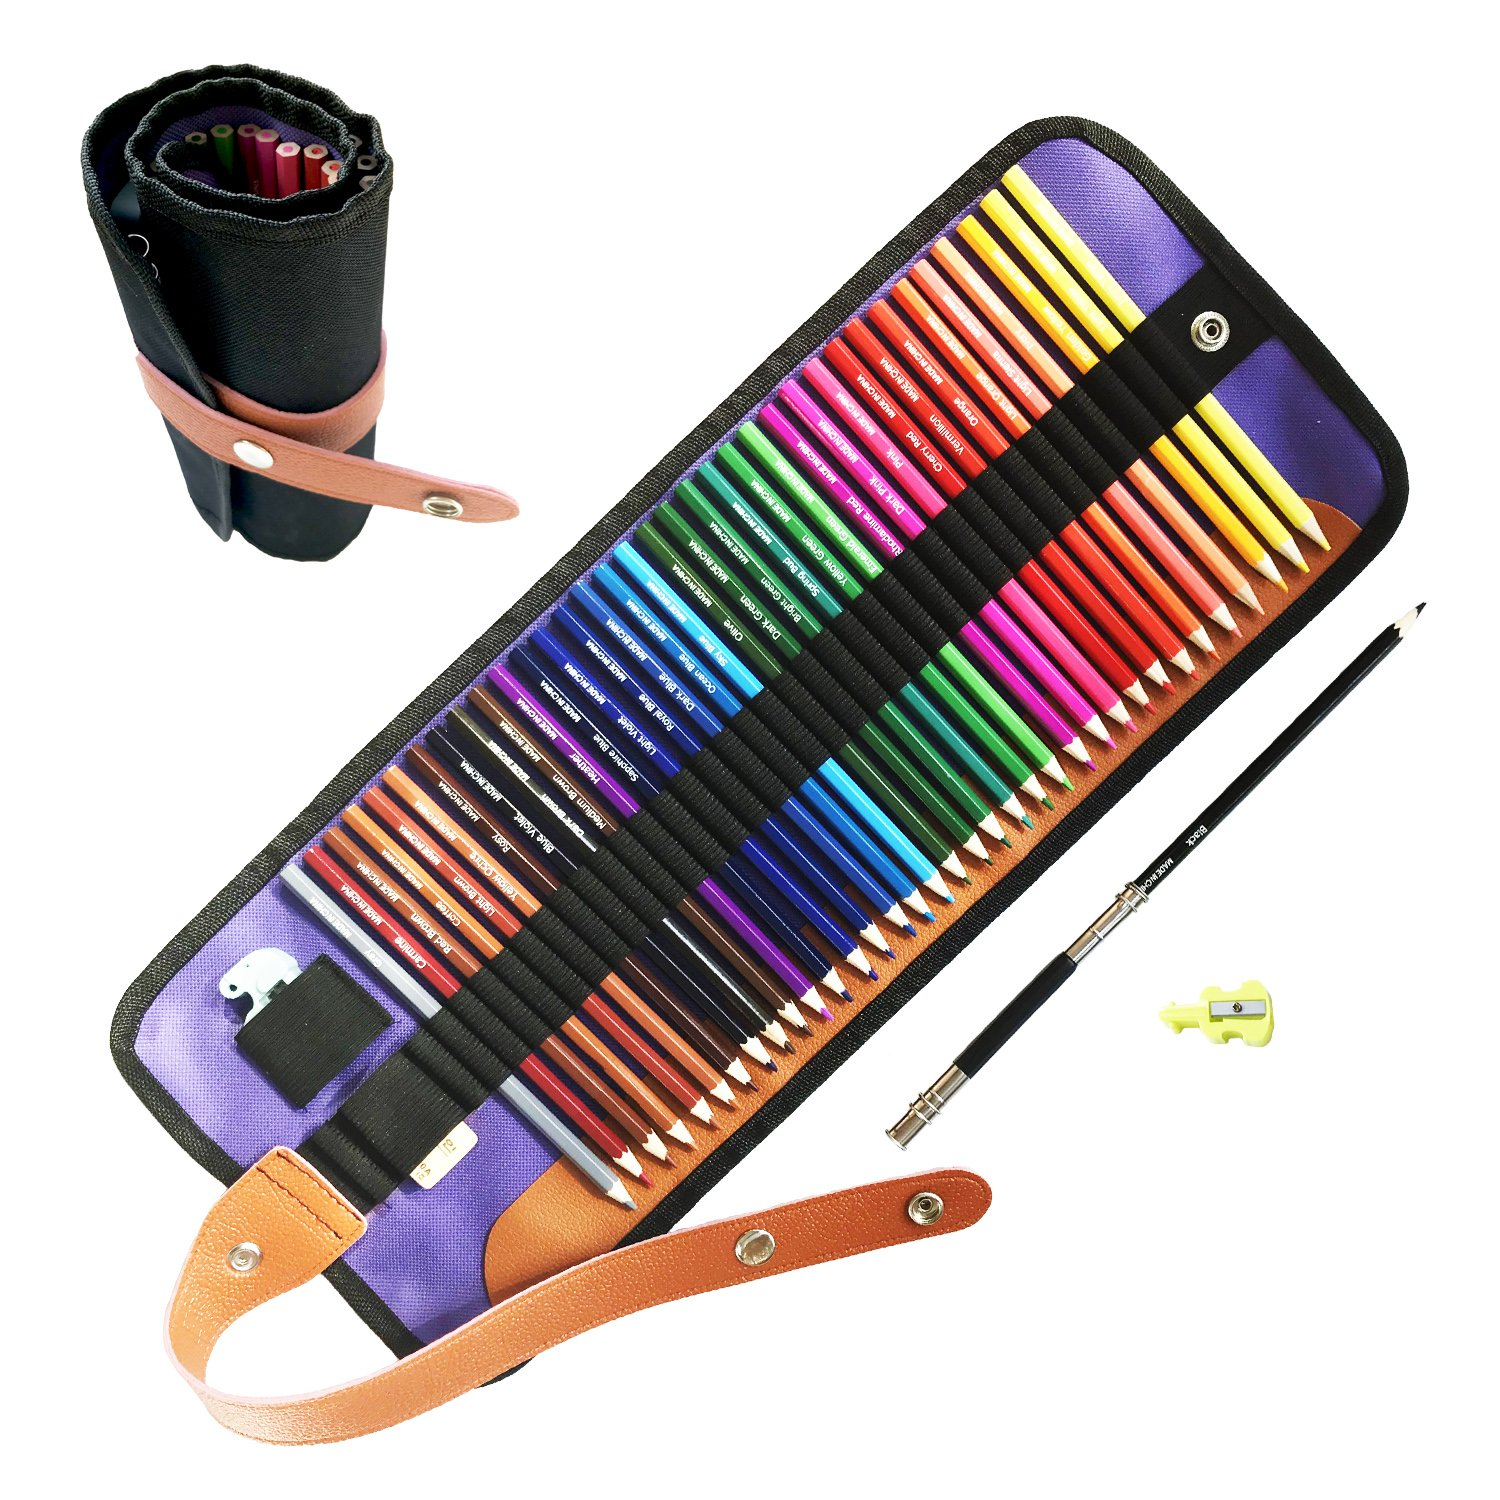 36 Colored Pencils Set with Easer,Sharpener, Pencil Extender and Canvas Pencil Bag, Drawing Pencils for Sketch, Arts, Coloring Books